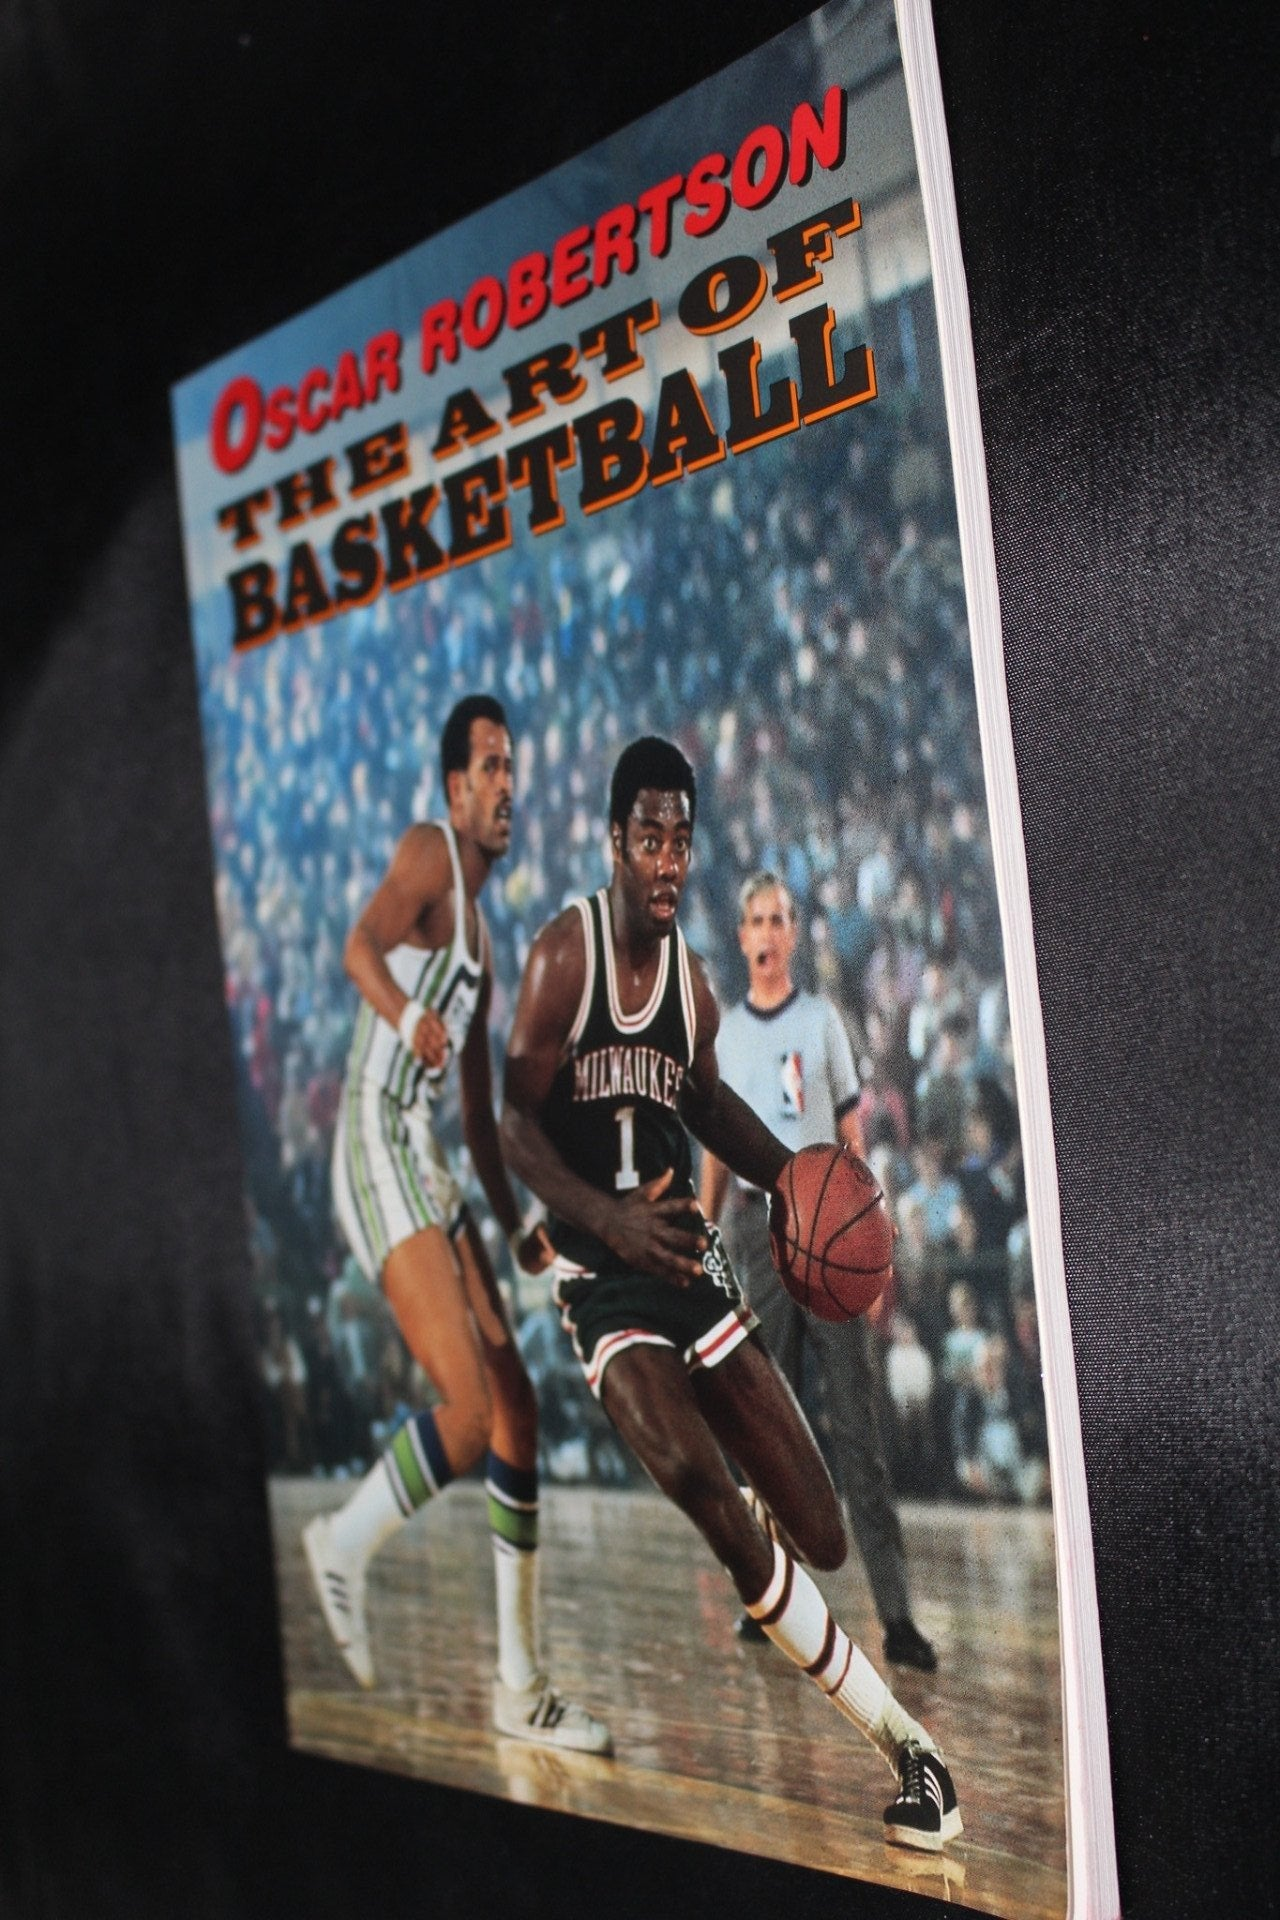 Oscar Robertson Autographed The Art of Basketball Oversized Paperback Book - Vintage Indy Sports